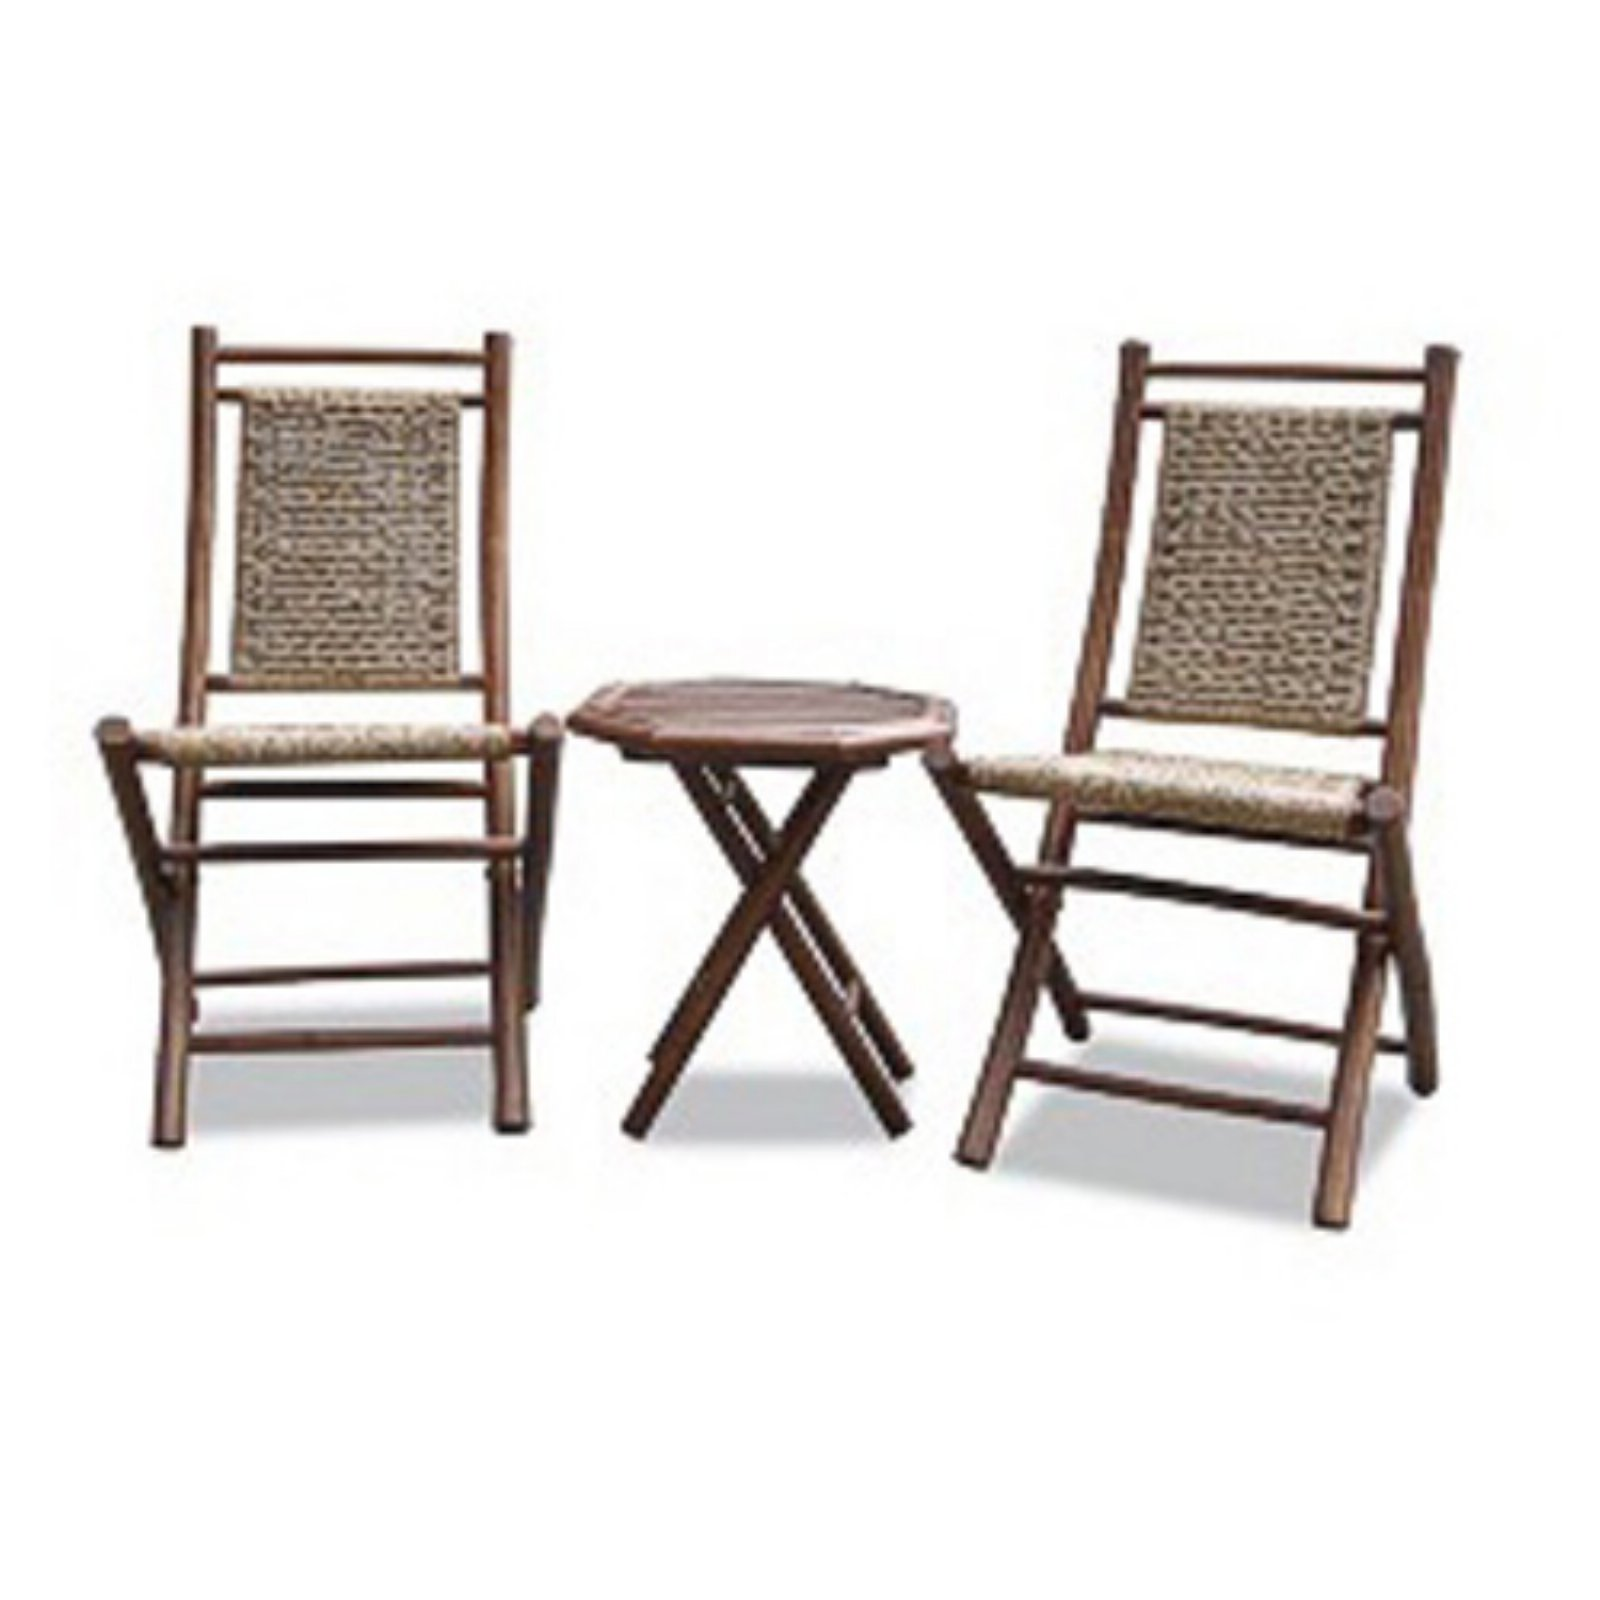 Heather Ann Creations Maui 3 Piece Bamboo Patio Conversation Set